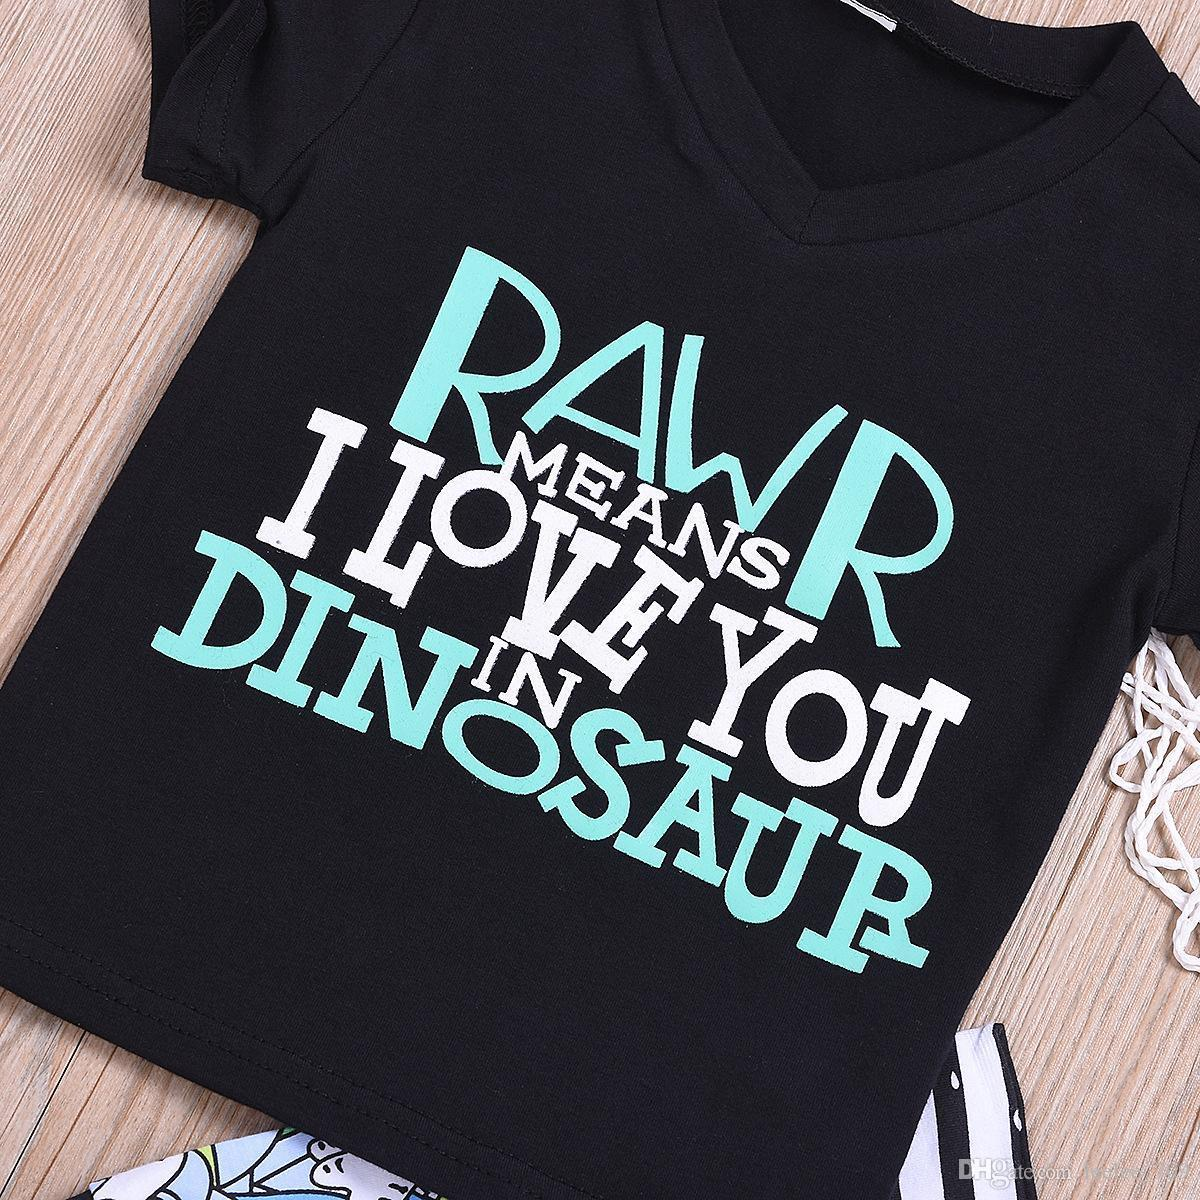 Trendy Kids Baby Boy Set V Neck Black Letters Tank Top Dino Print Shorts Outfits Toddler Clothing Sets 3m-4y Wholesale 2019 Summer